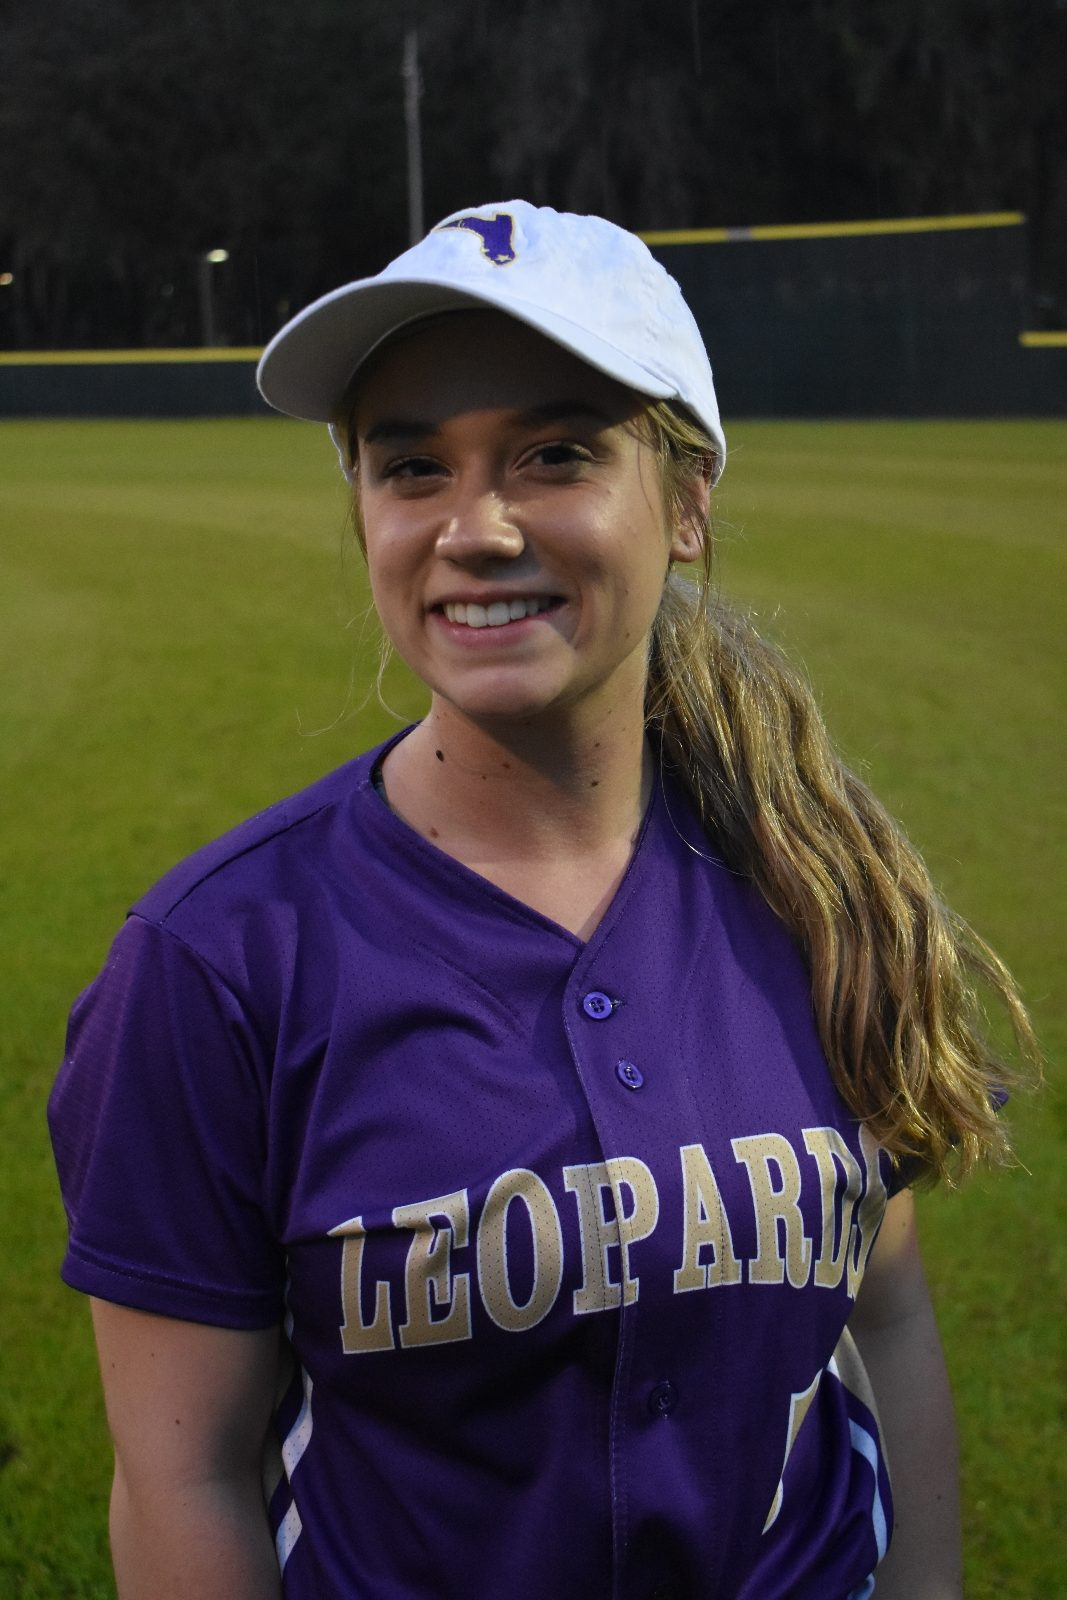 Shenefield Staying Dominant with School Record 20 K's